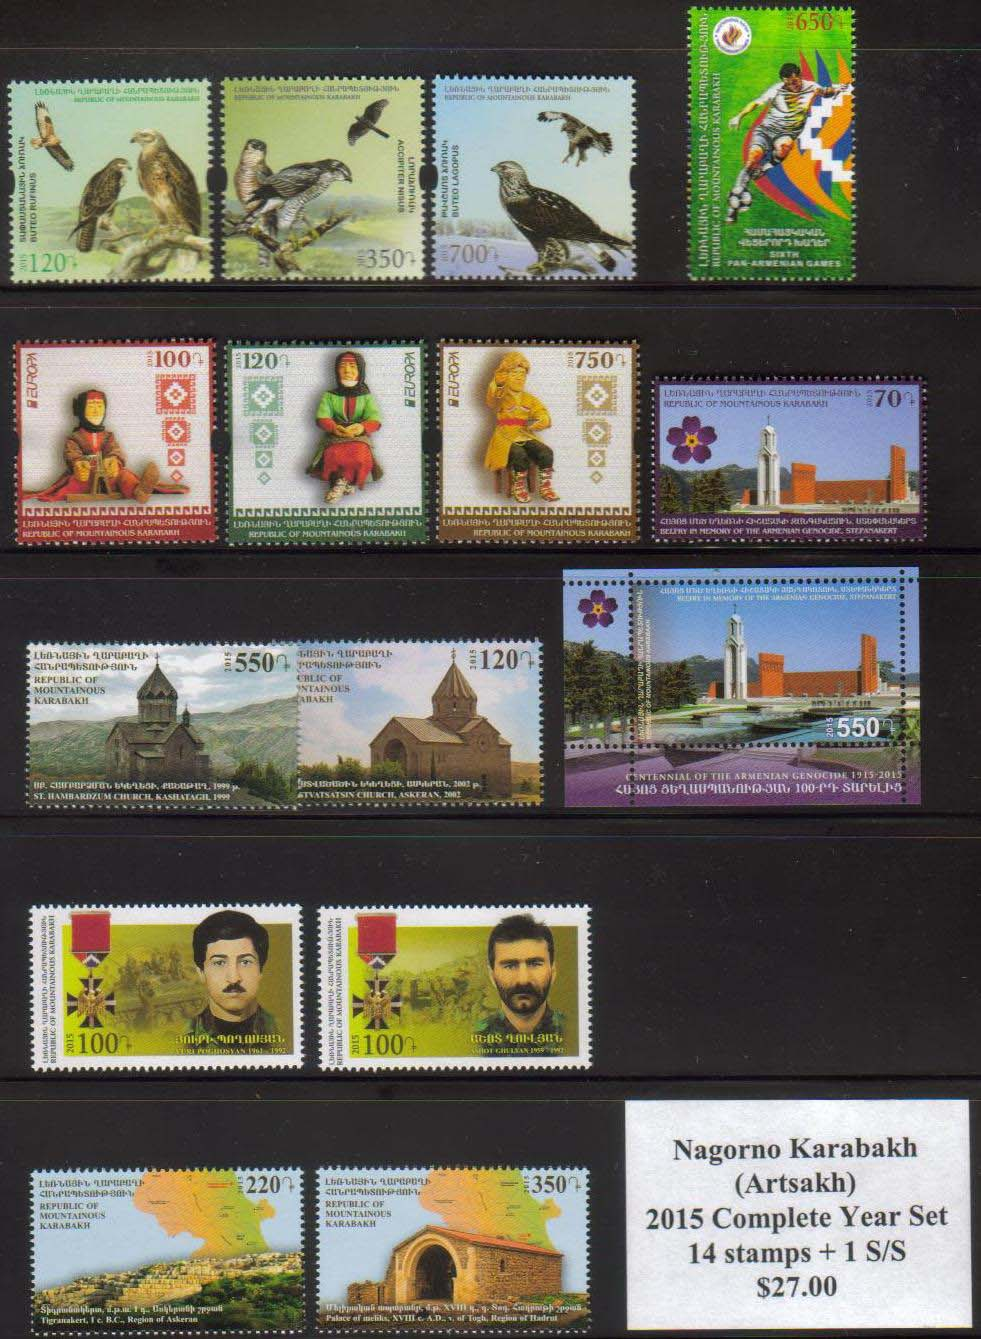 <Font 0-year-2015><br><font color=red><b>Nagorno Karabakh 2015 Complete Year set</font></b><br>14 stamps and one Souvenir Sheet<br><a href=&quot;/images/KA-2015-Year.jpg&quot;>   <font color=green><b>View the image</b></a></font><br>